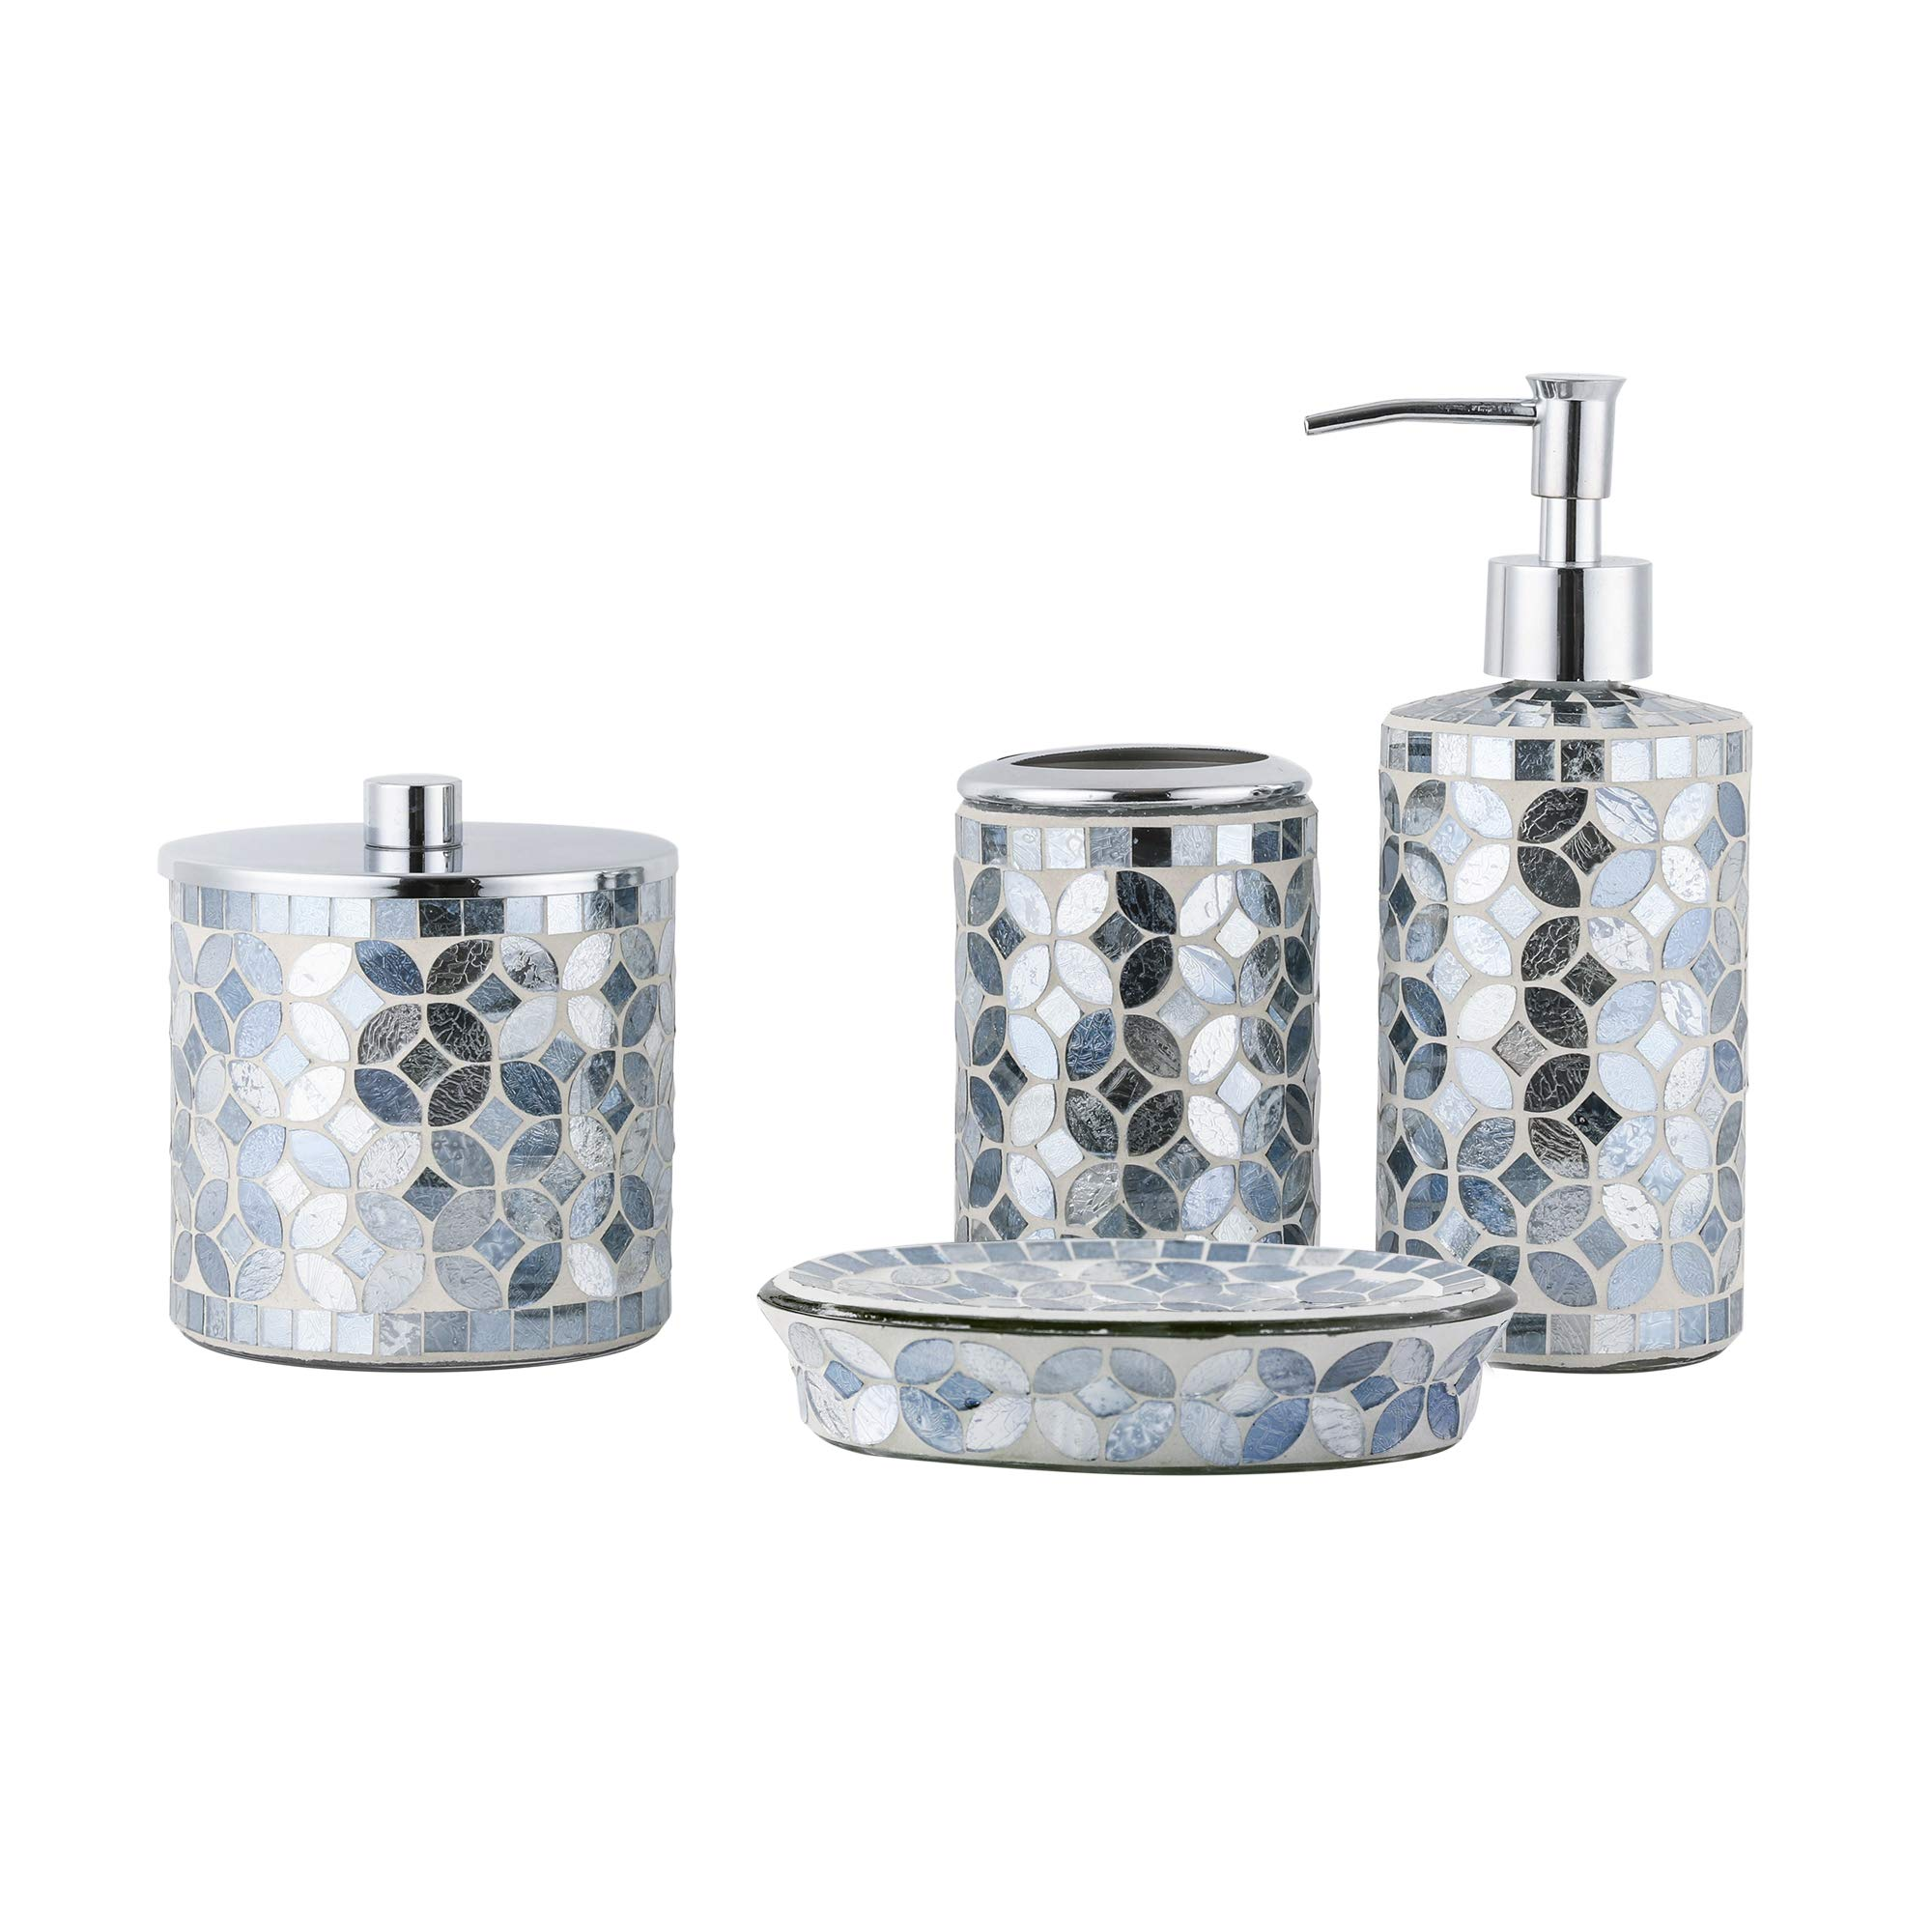 Whole Housewares Bathroom Accessories Set, 4-Piece Glass Mosaic Bath Accessory Completes with Lotion Dispenser/Soap Pump, Cotton Jar, Soap Dish, Toothbrush Holder (Blue Ink) by Whole Housewares (Image #1)